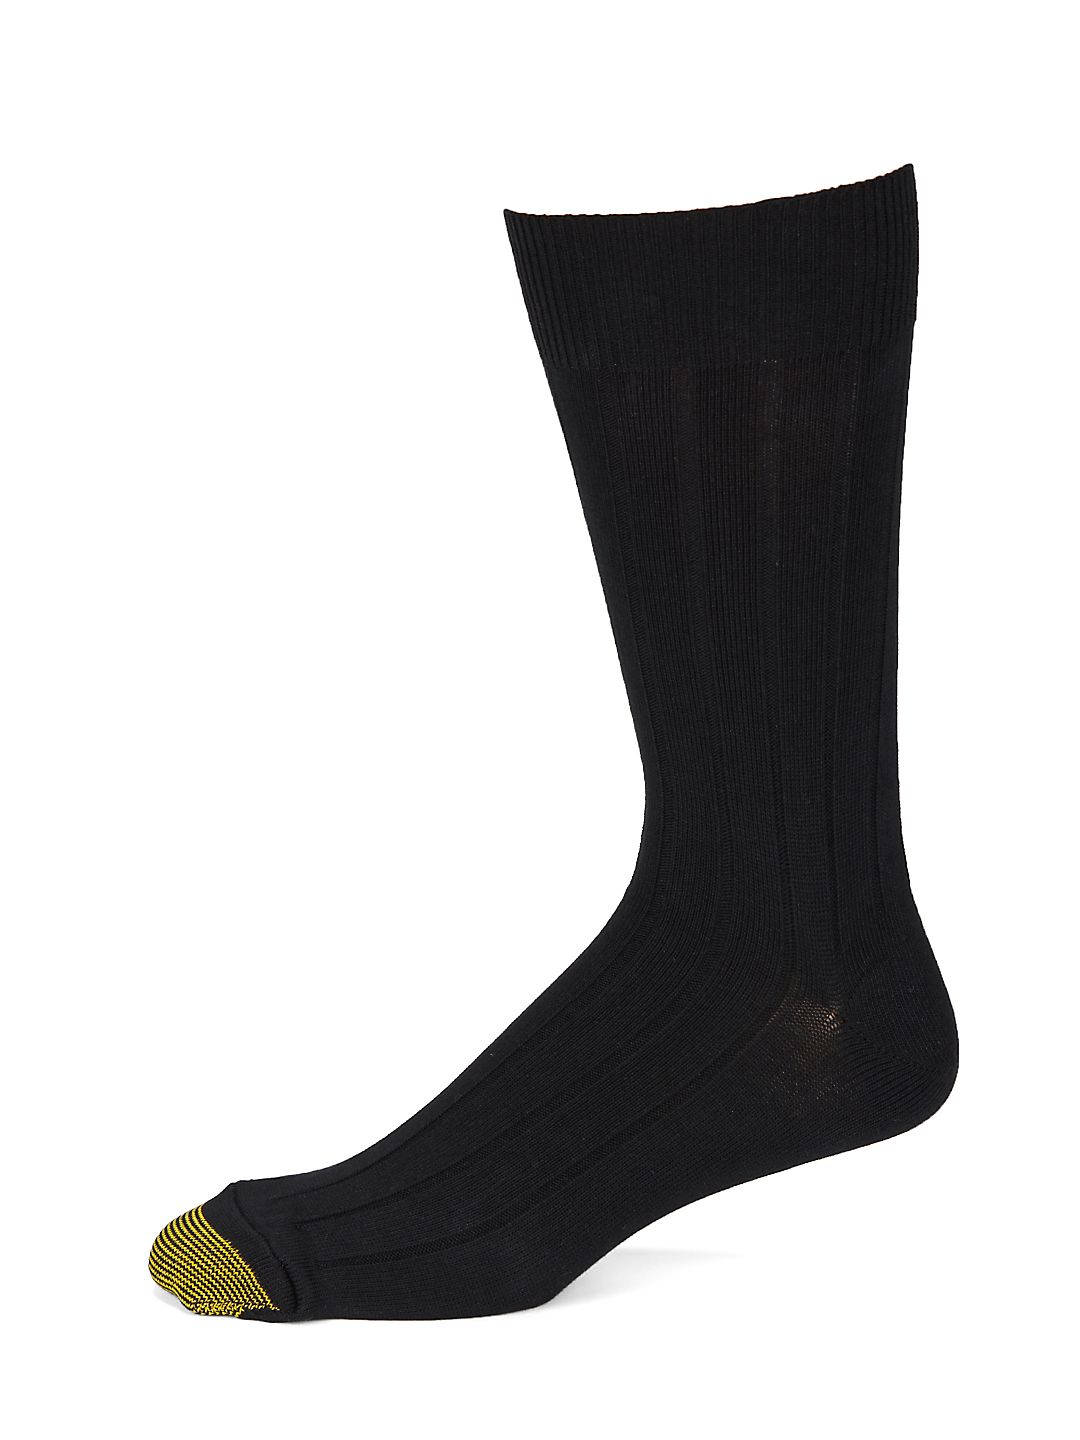 Gold Toe Men's Hampton Premium Cottton Mid-Weight Ribbed Crew Socks, 3 Pairs